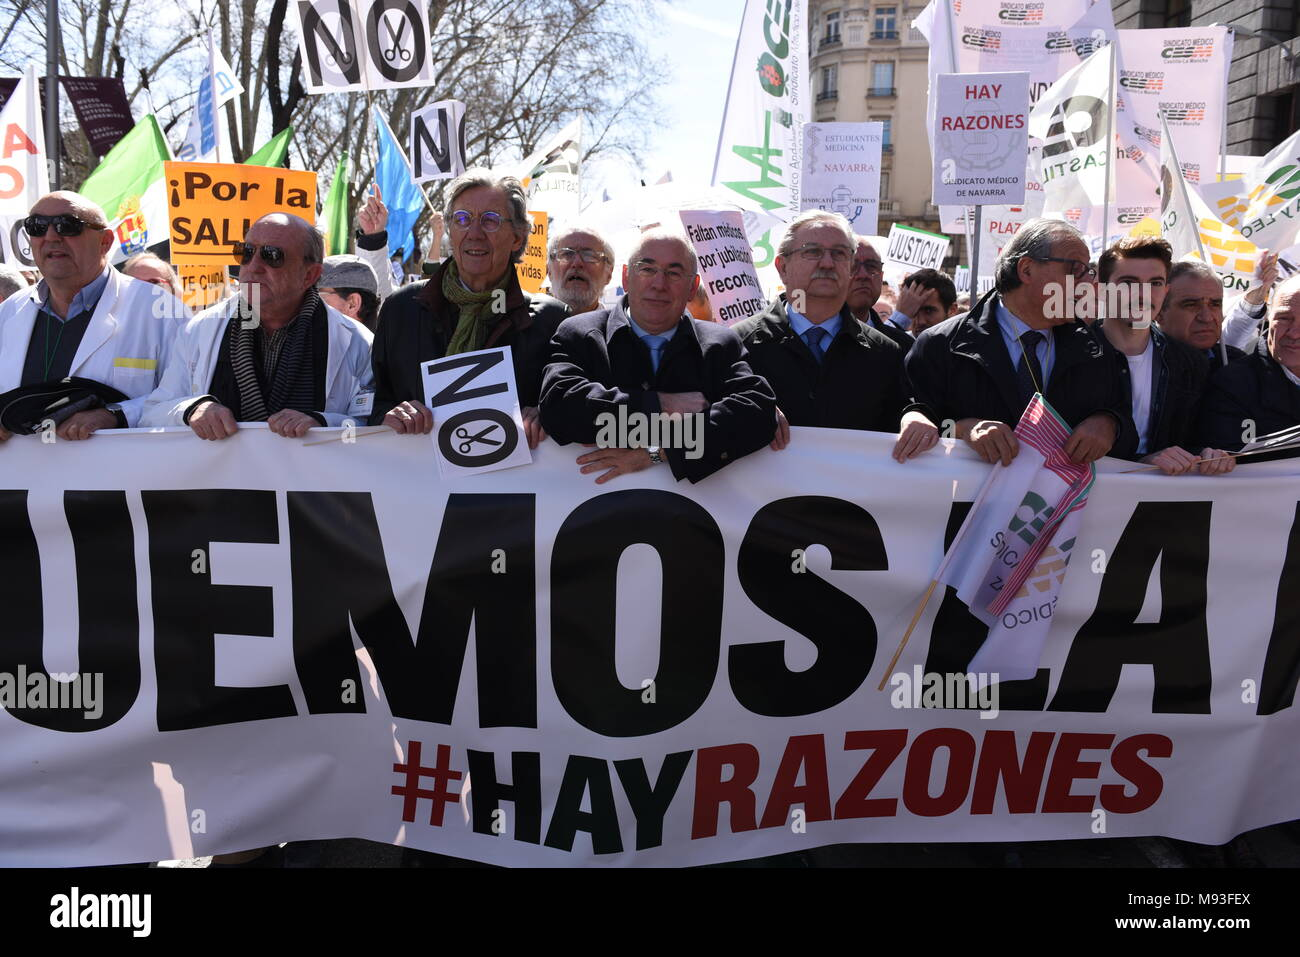 Madrid, Spain. 21st Mar, 2018. People take part in a protest by Spanish doctor's unions against cuts in the Public Health system in Madrid. Credit: Jorge Sanz/Pacific Press/Alamy Live News - Stock Image